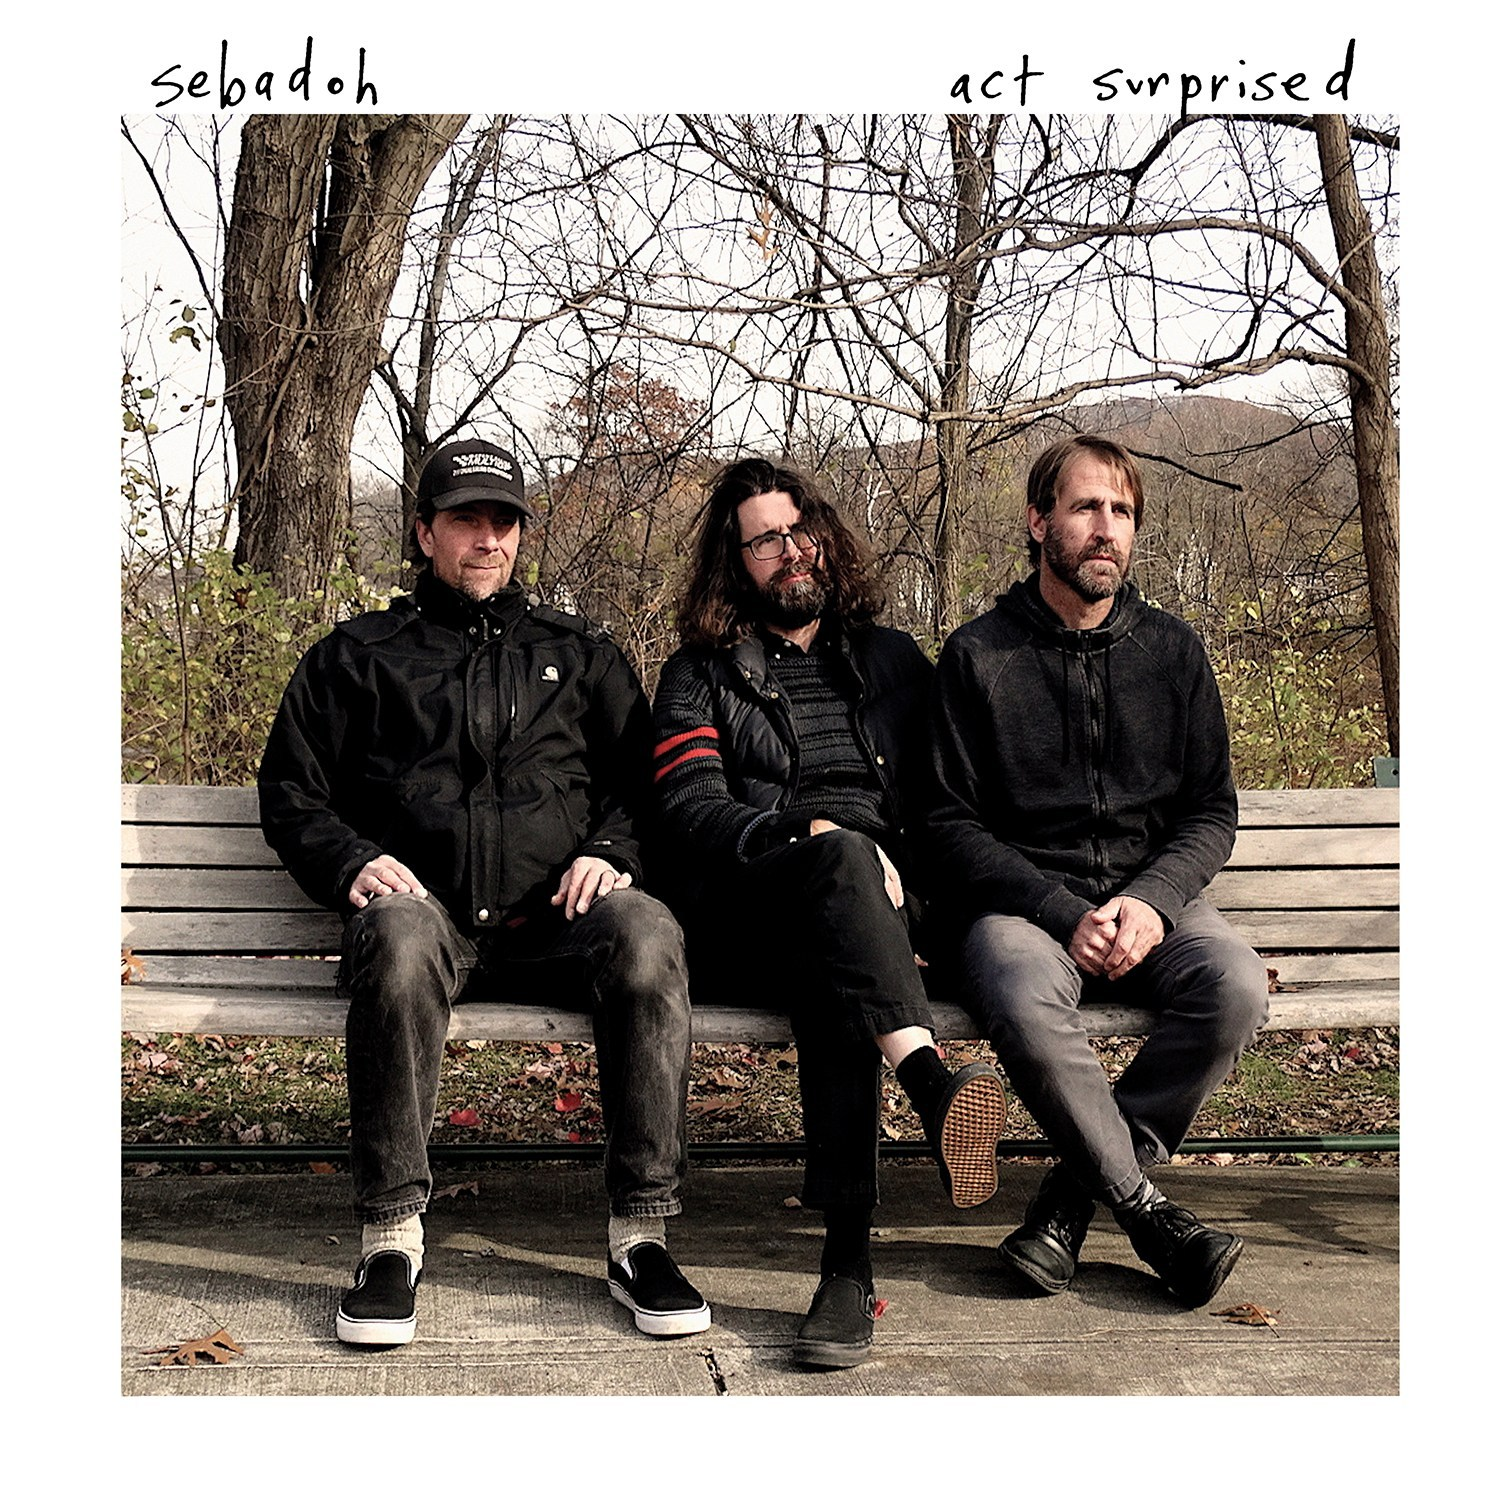 Sebadoh - Act Surprised - Digital